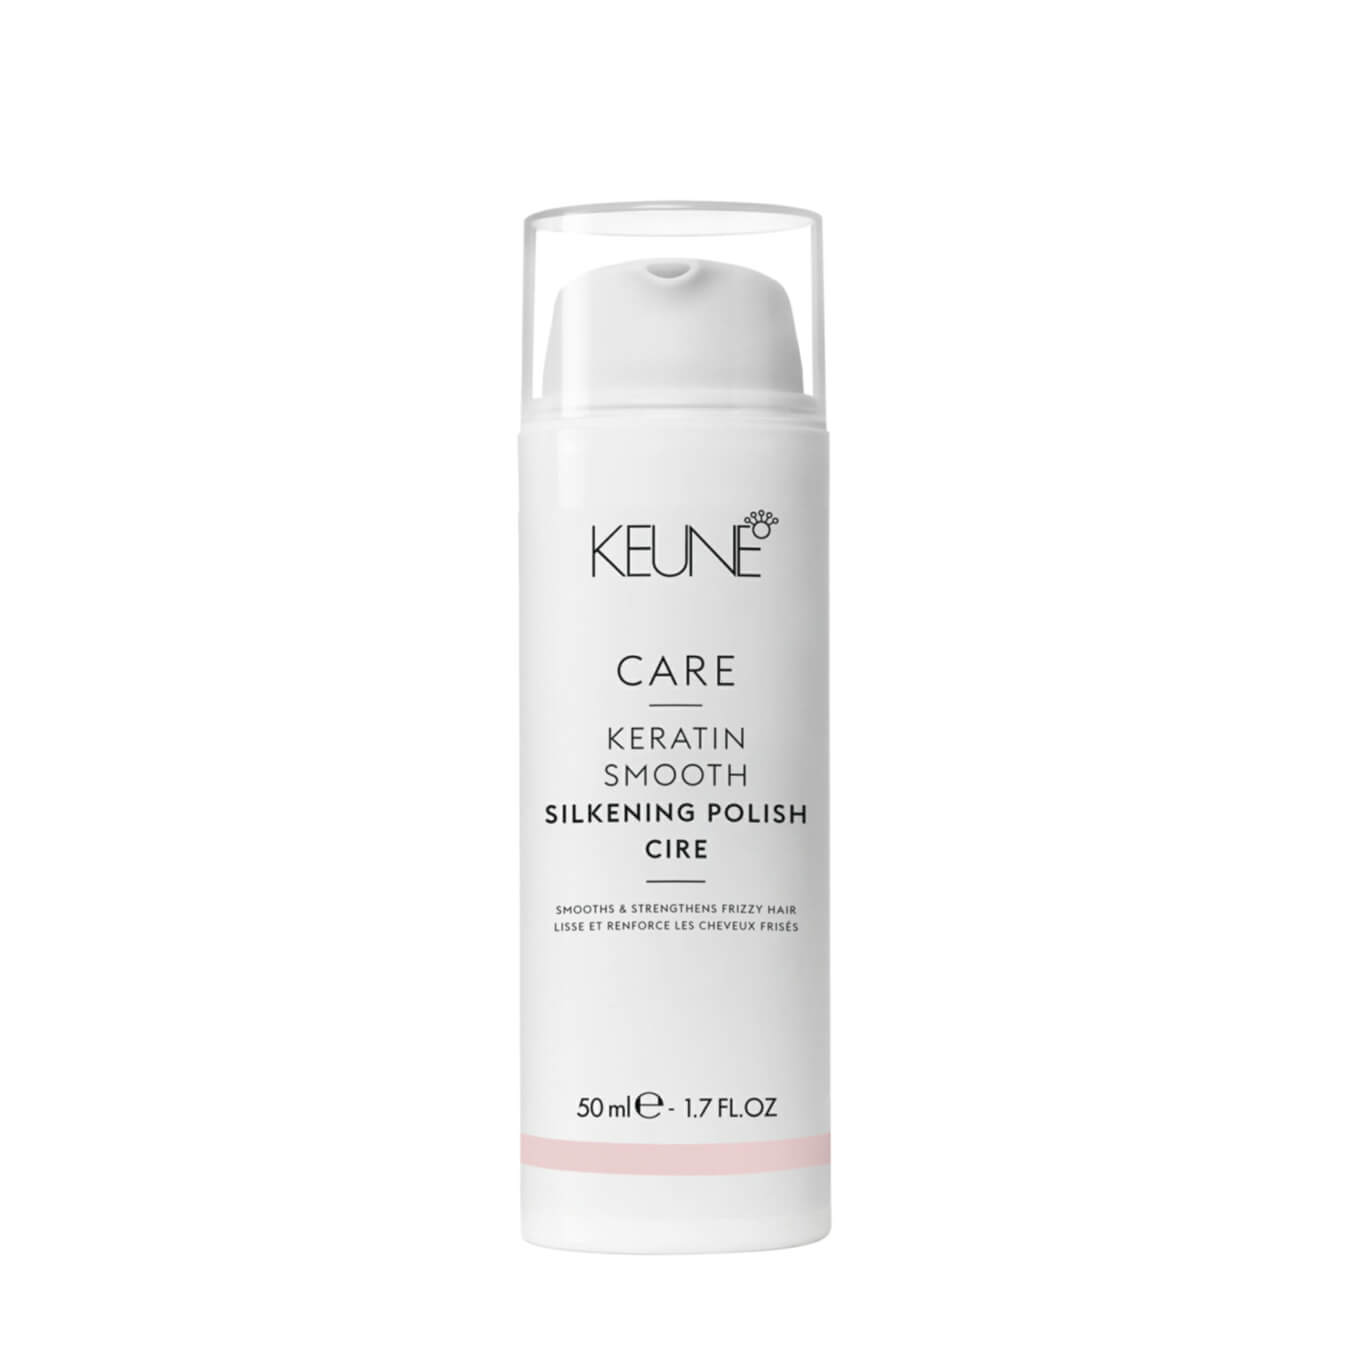 Kauf Keune Care Keratin Smooth Silkening Polish 50ml